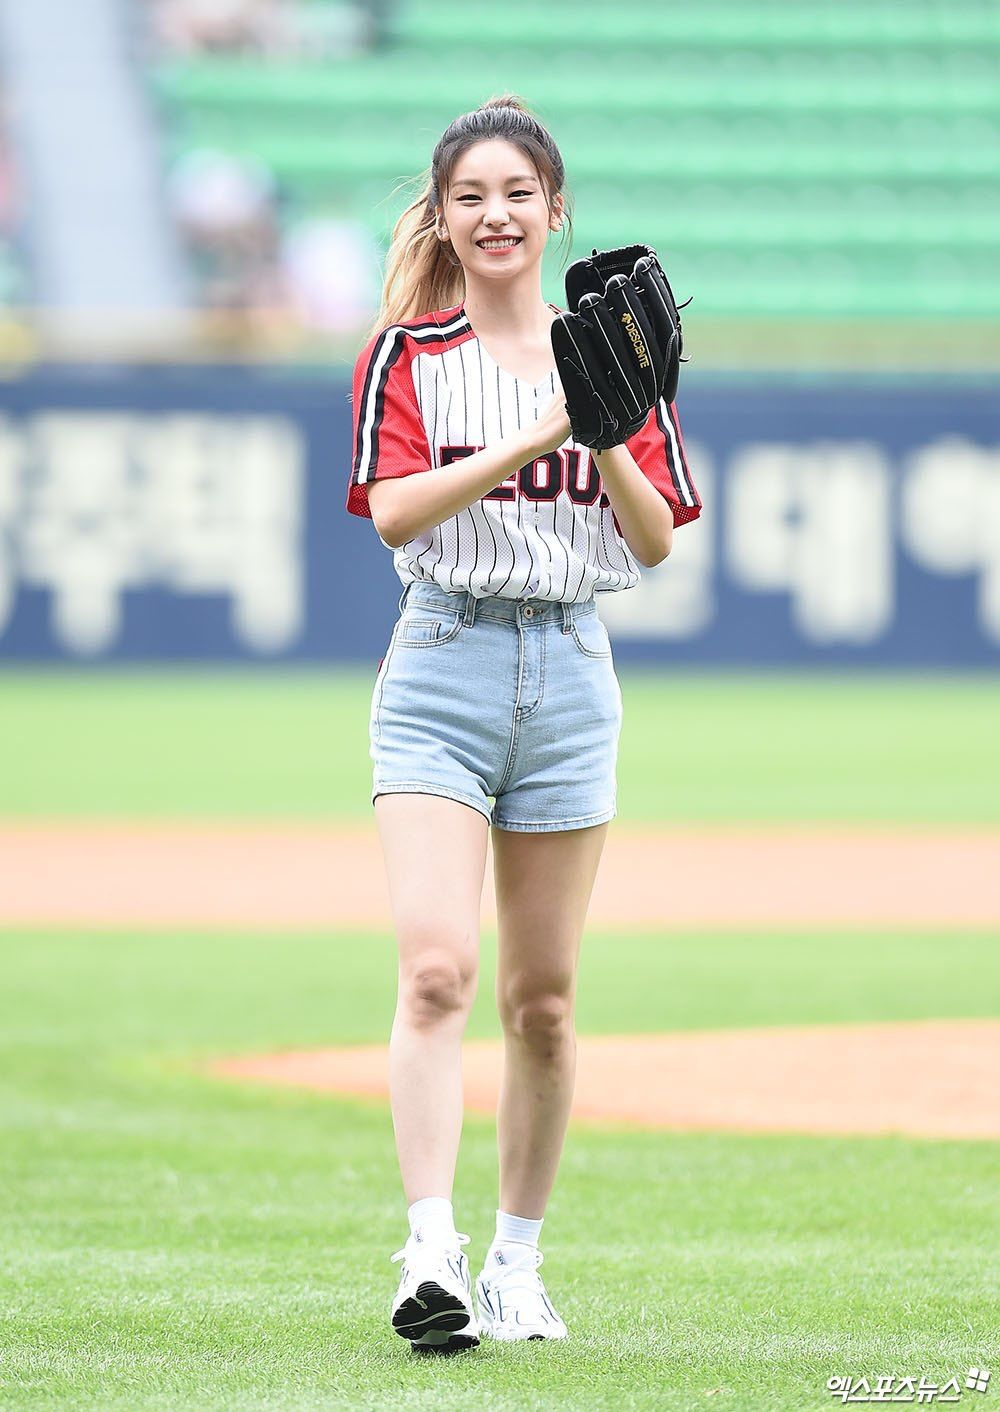 femaleidolsbaseball_6a